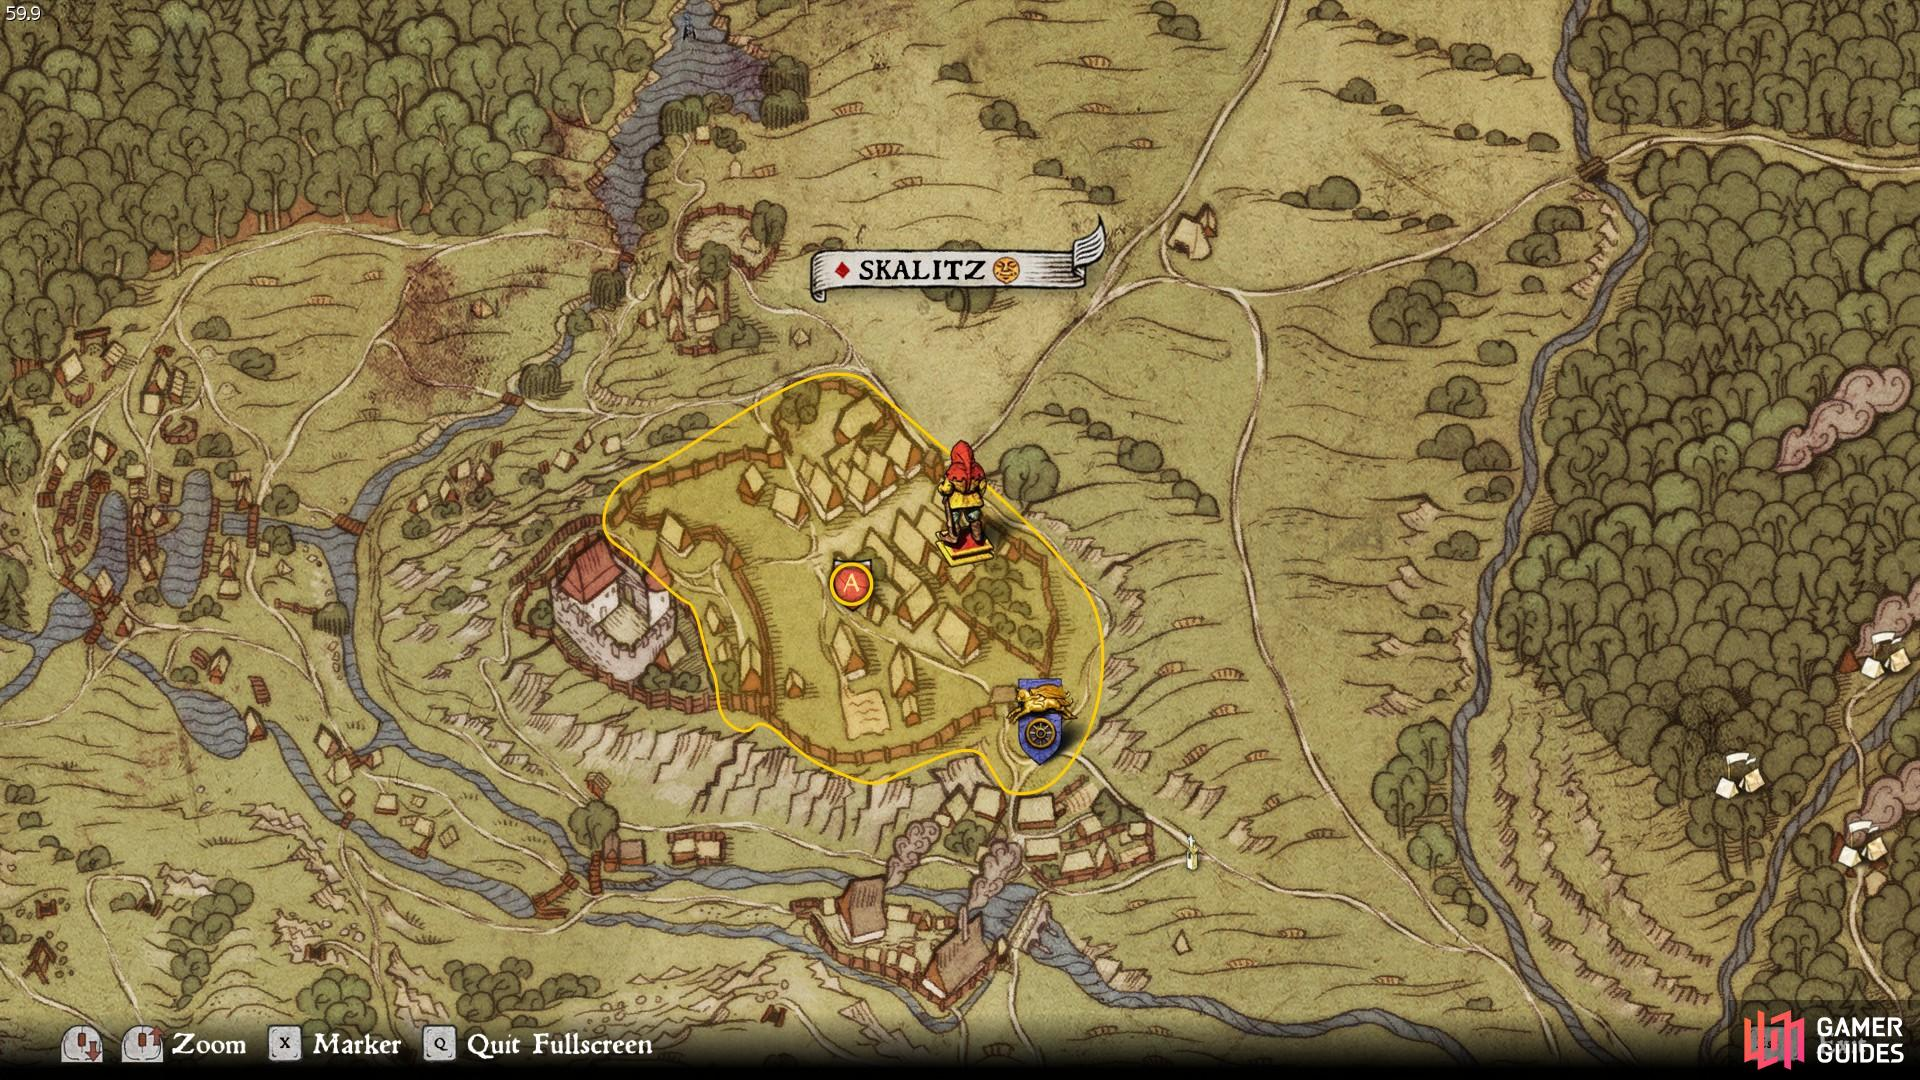 The location of the dove-cote in Skalitz under which the treasure can be found.